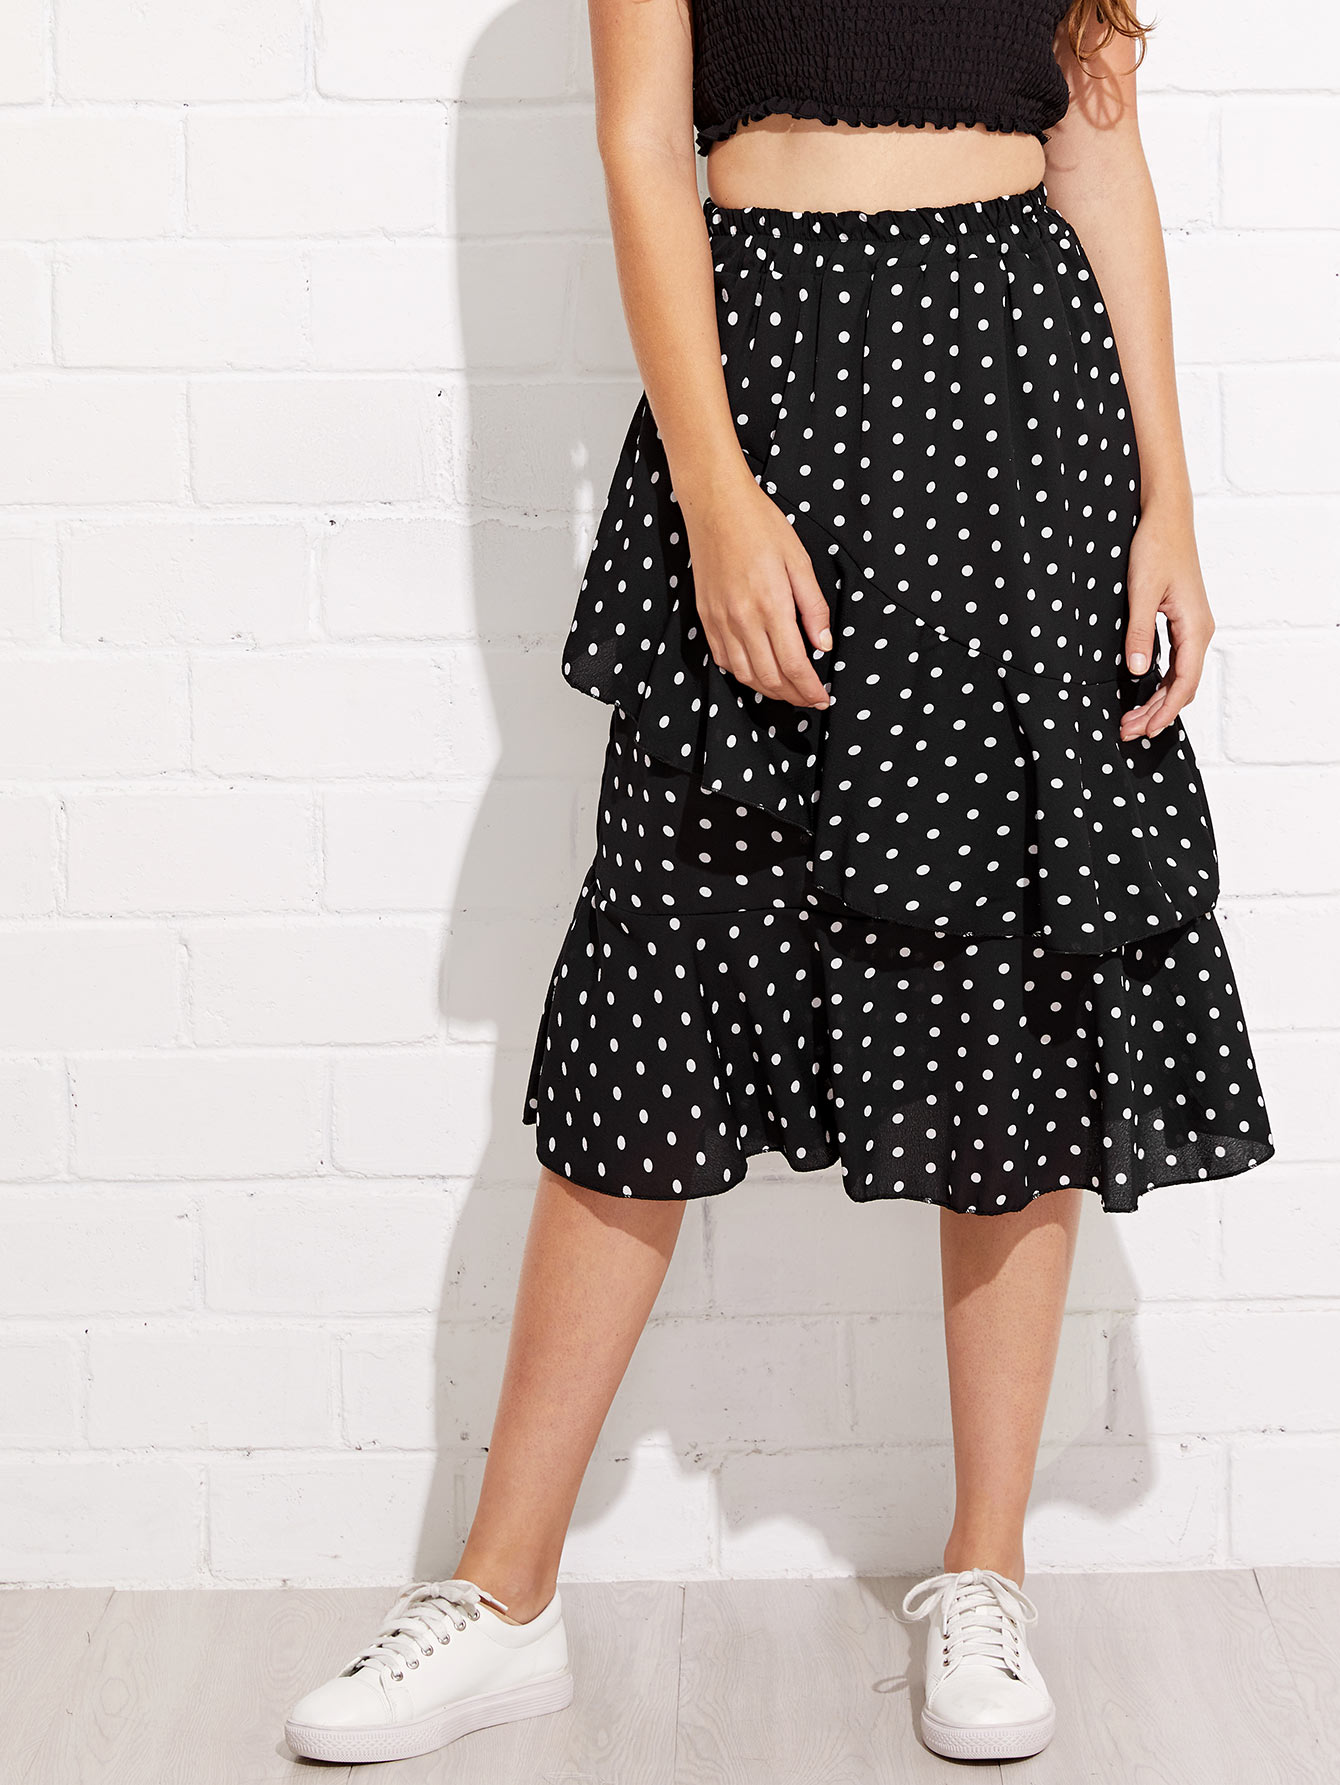 Tiered Layer Polka Dot Midi Skirt lace tiered layer skirt